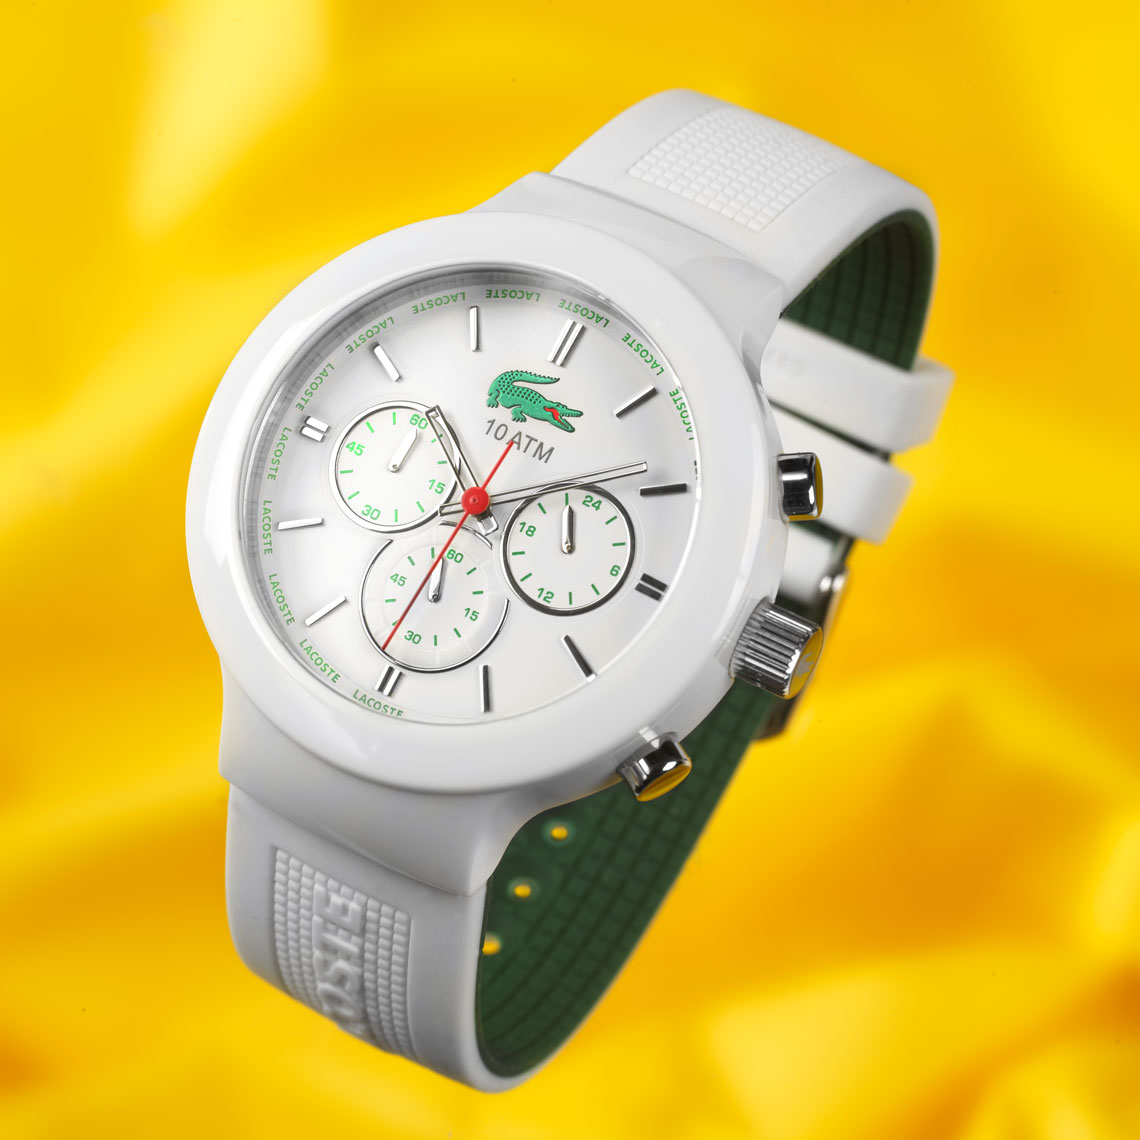 White Lacosite watch/product photography